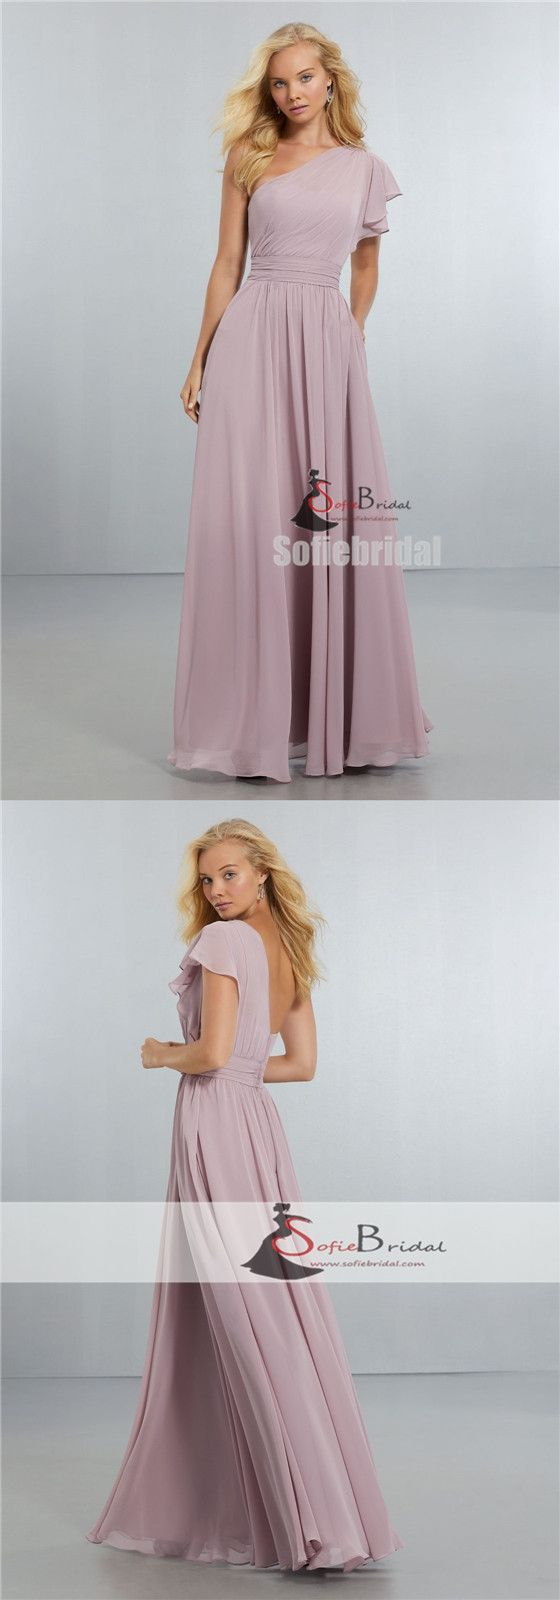 One Shoulder A-line Chiffon Prom Dresses, Popular Wedding Guest Dresses, PD0403 #bridesmaiddresses